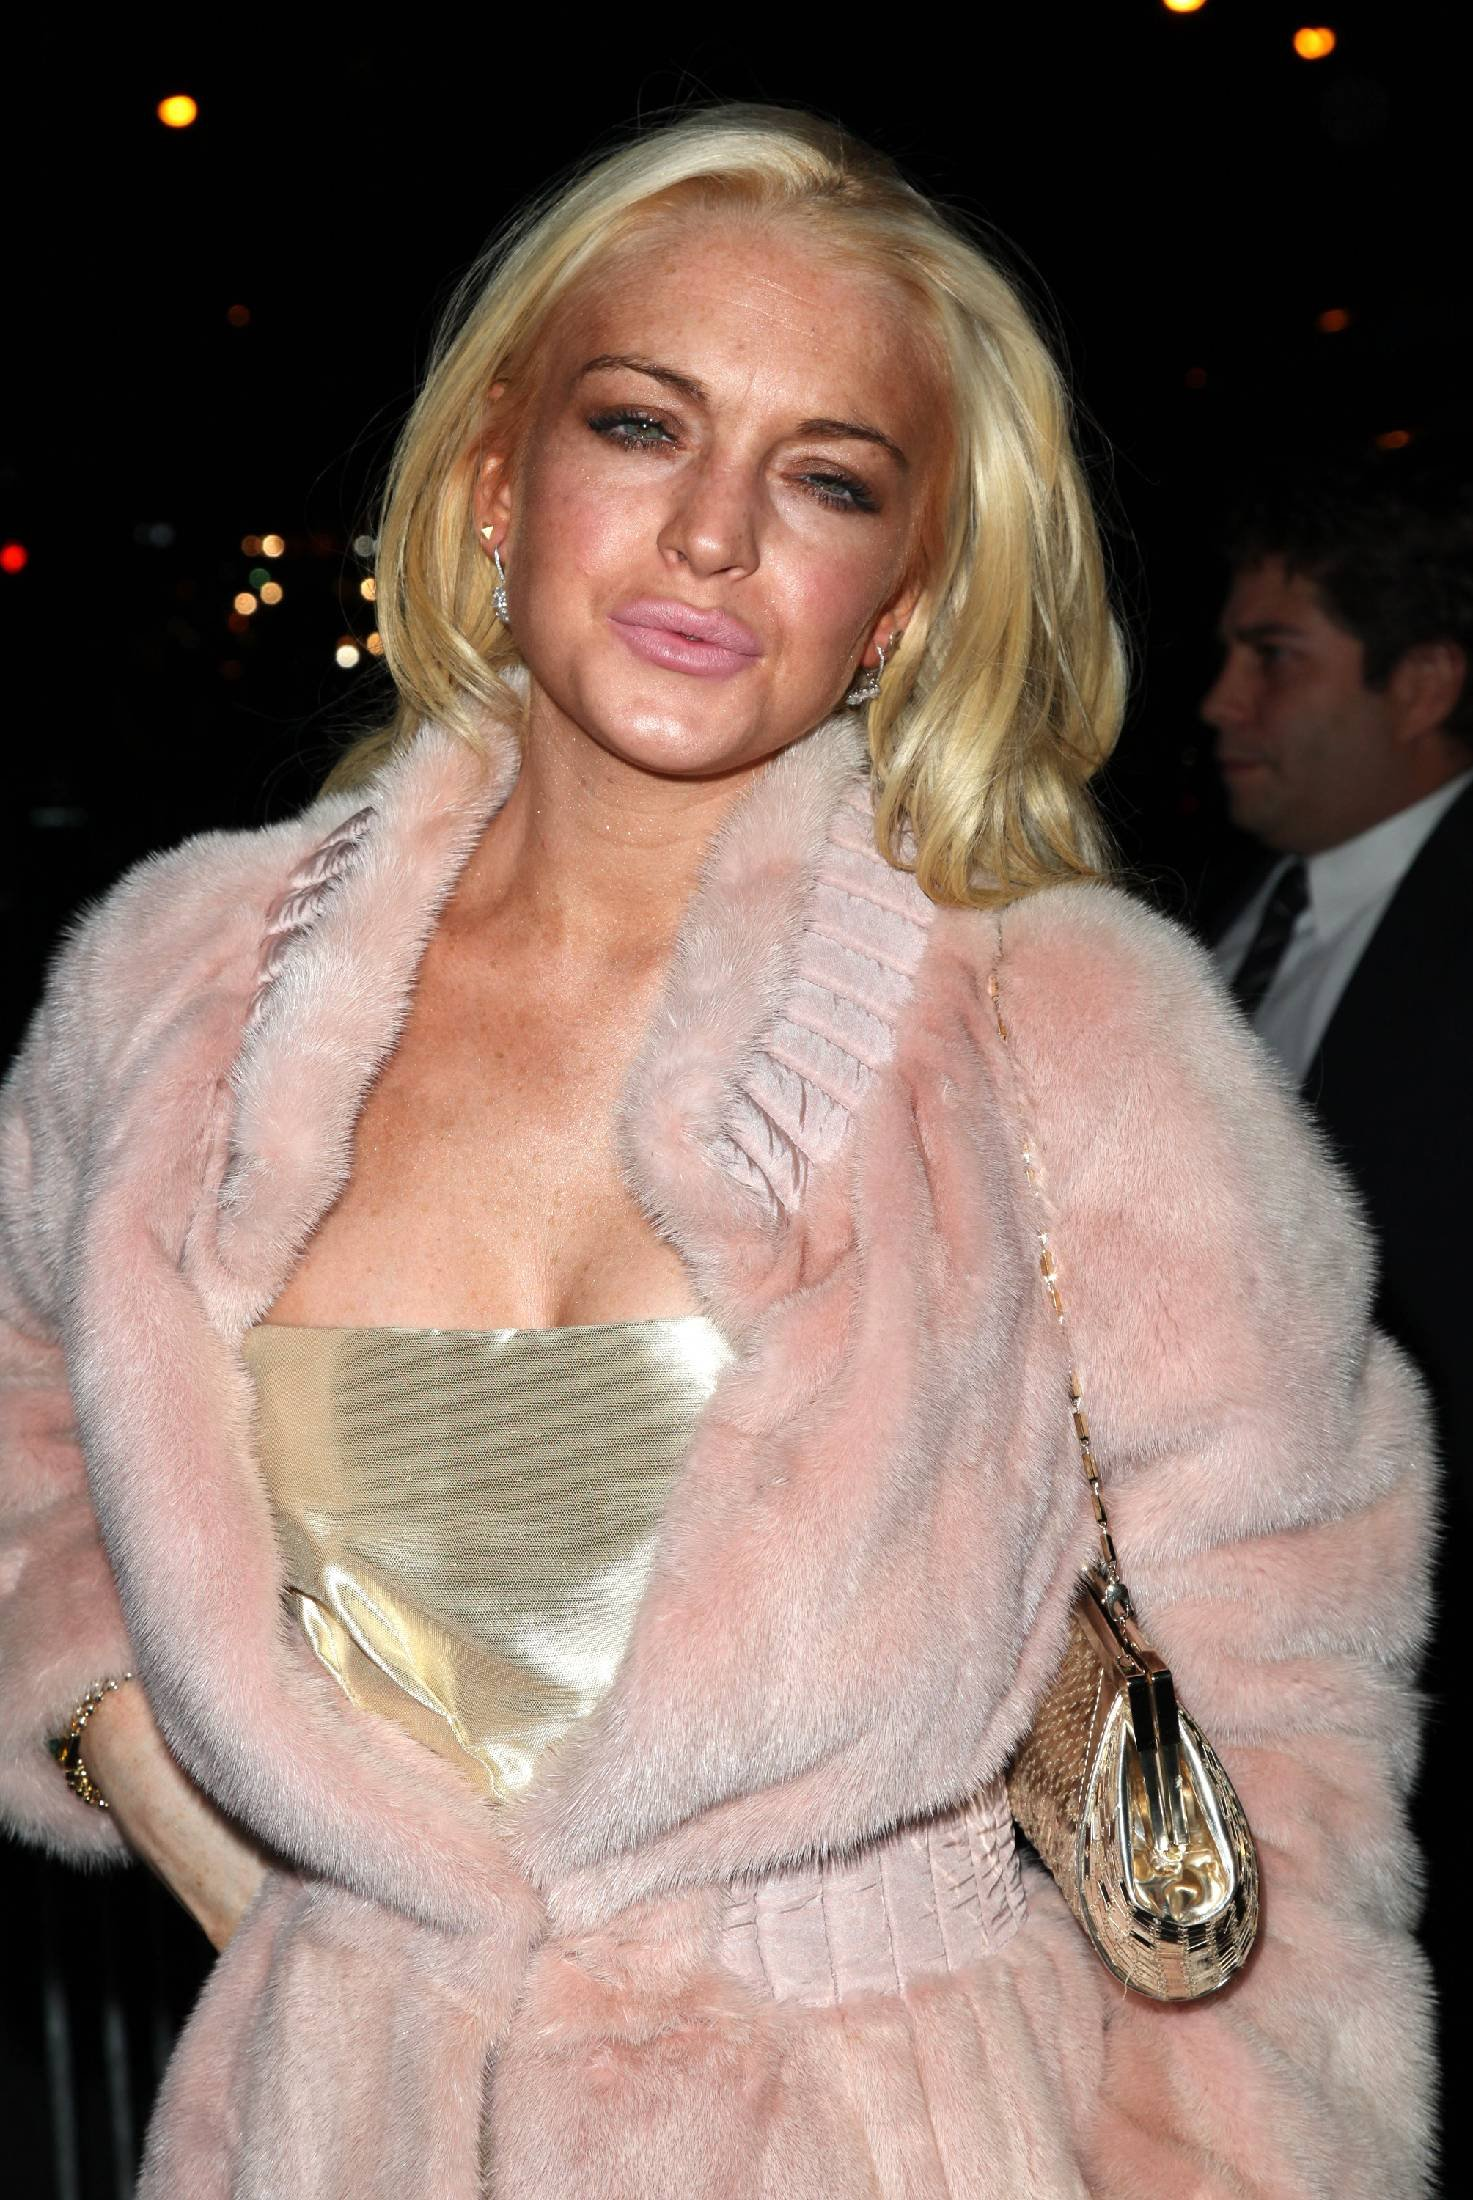 68445_Lindsay_Lohan_arrives_at_the_2009_Whitney_Museum_Gala-4_123_478lo.jpg